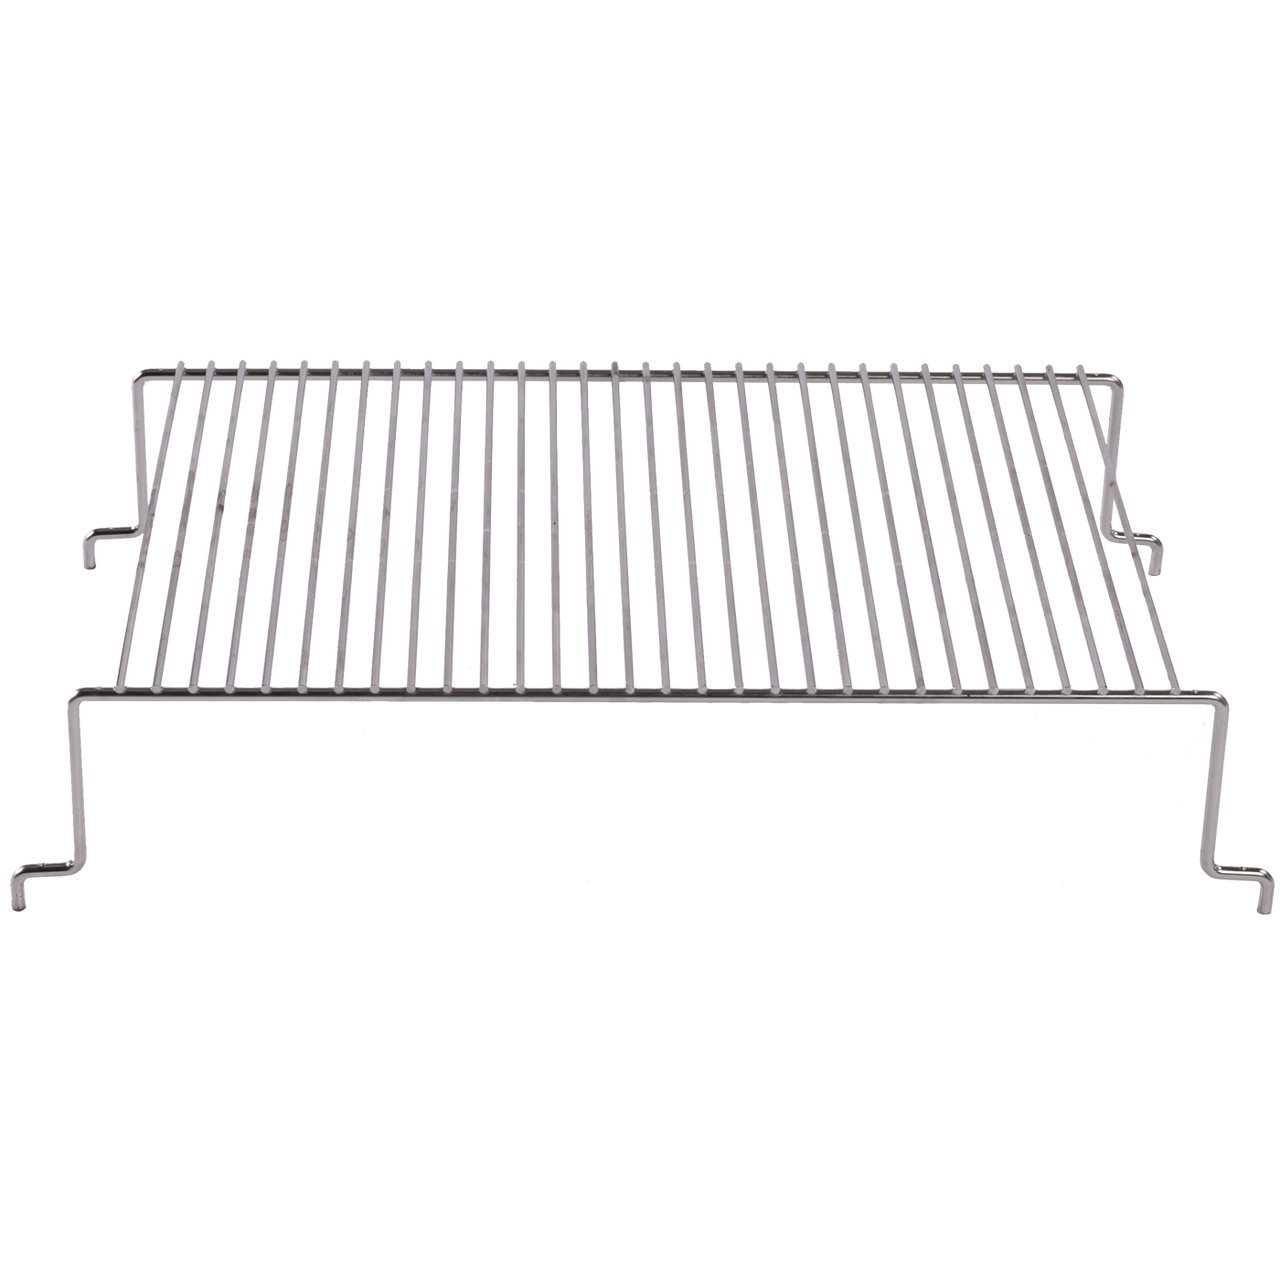 PK Grills PK99020 Raised Cooking Grid, for use on the Standard Hinged Cooking Grid by PK Grills